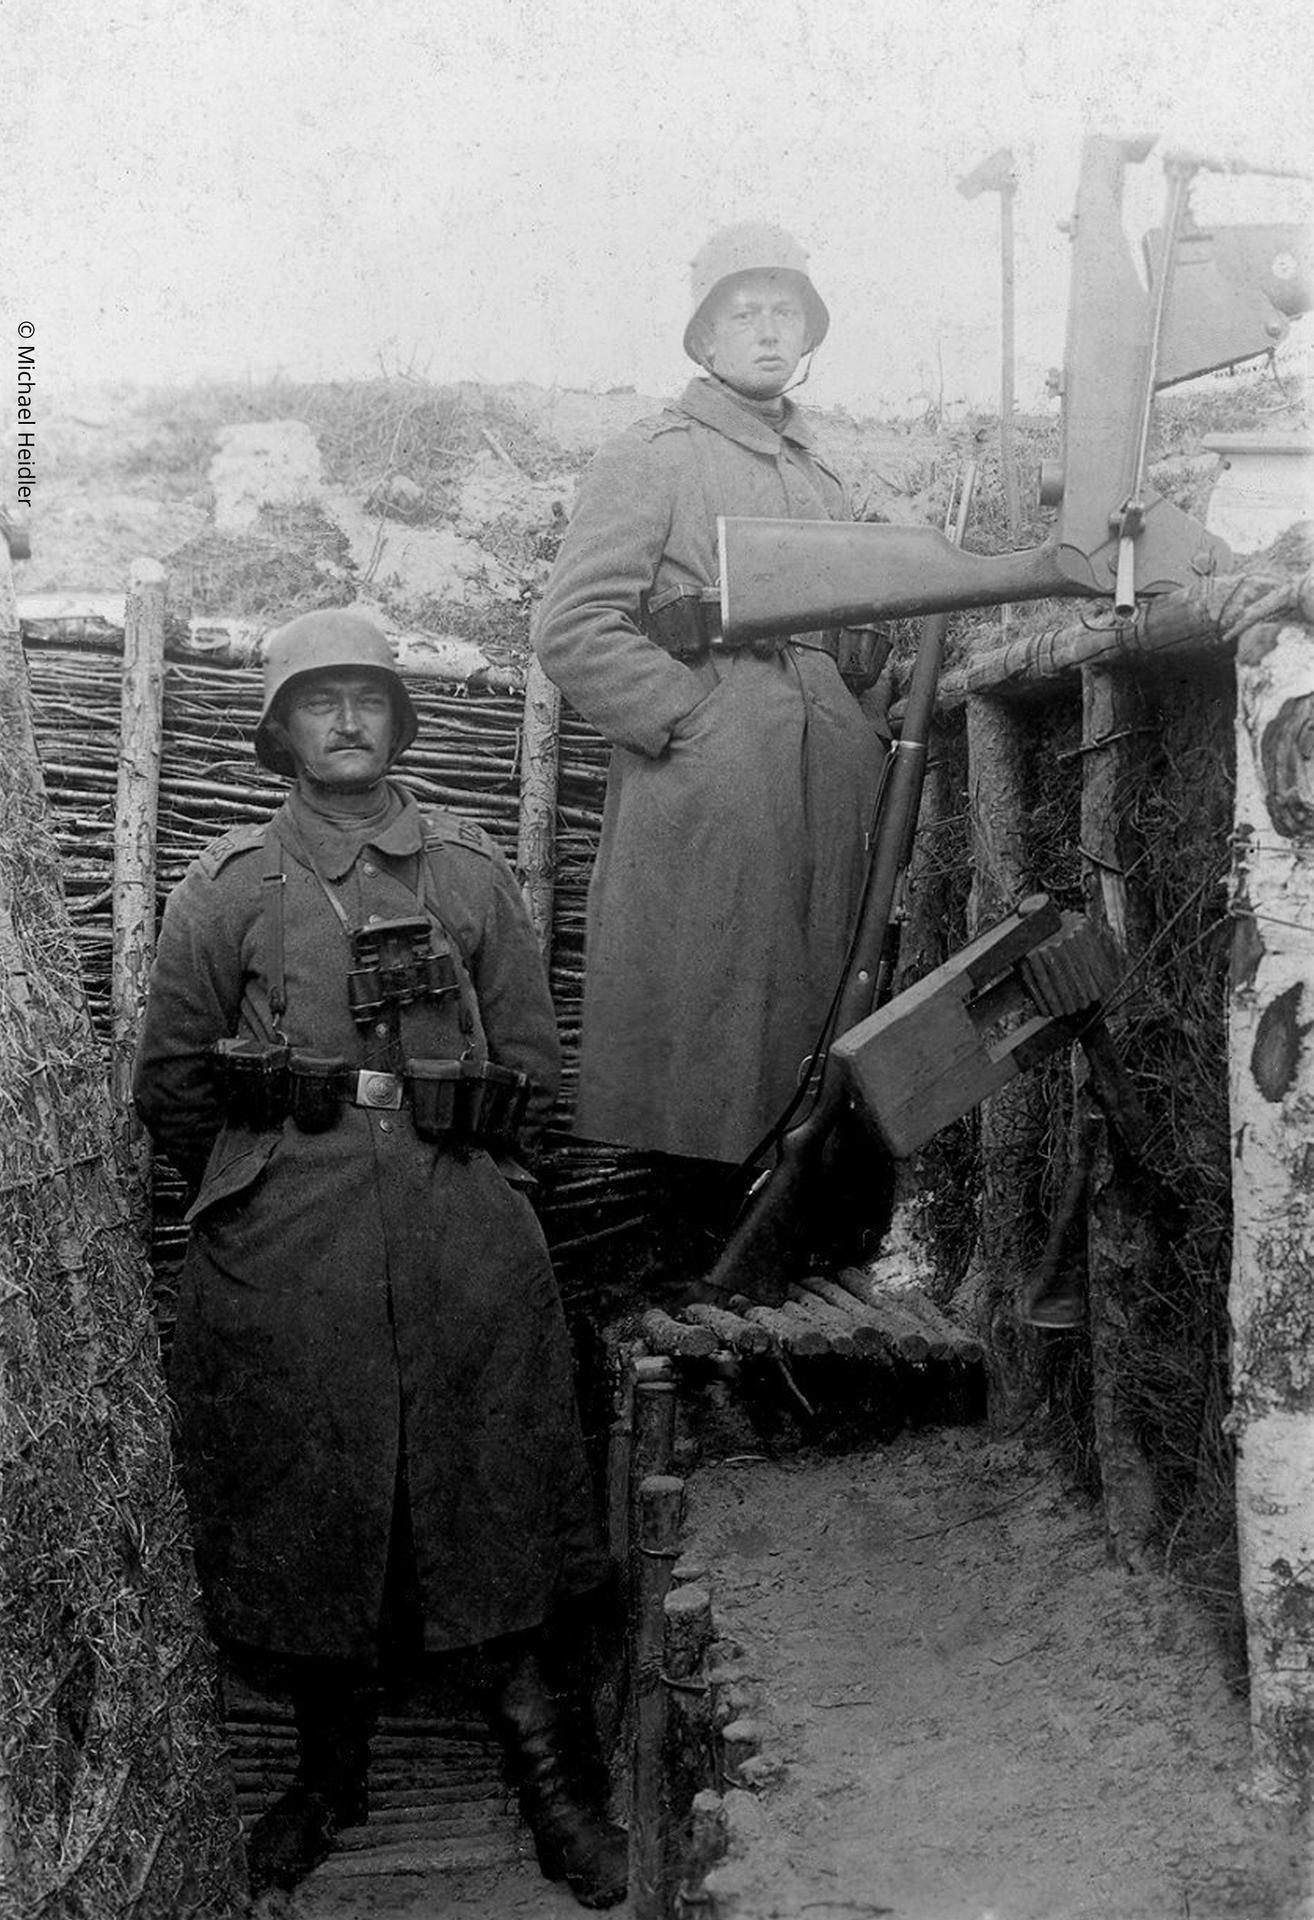 Photograph showing two German soldiers in a trench with a overhead trench fire device (Spiegelkolben): the fully developed 'Spiegelkolben' with lower bolt handle to allow reloading from cover.